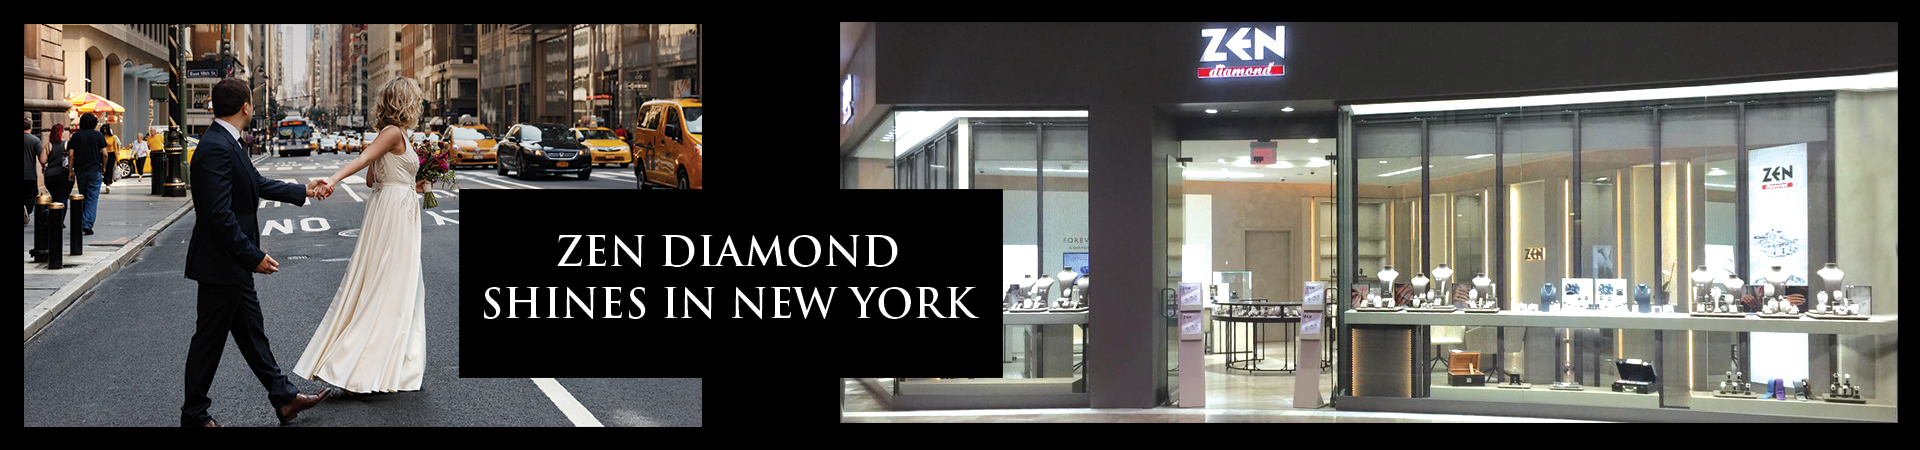 New York Zen Diamond